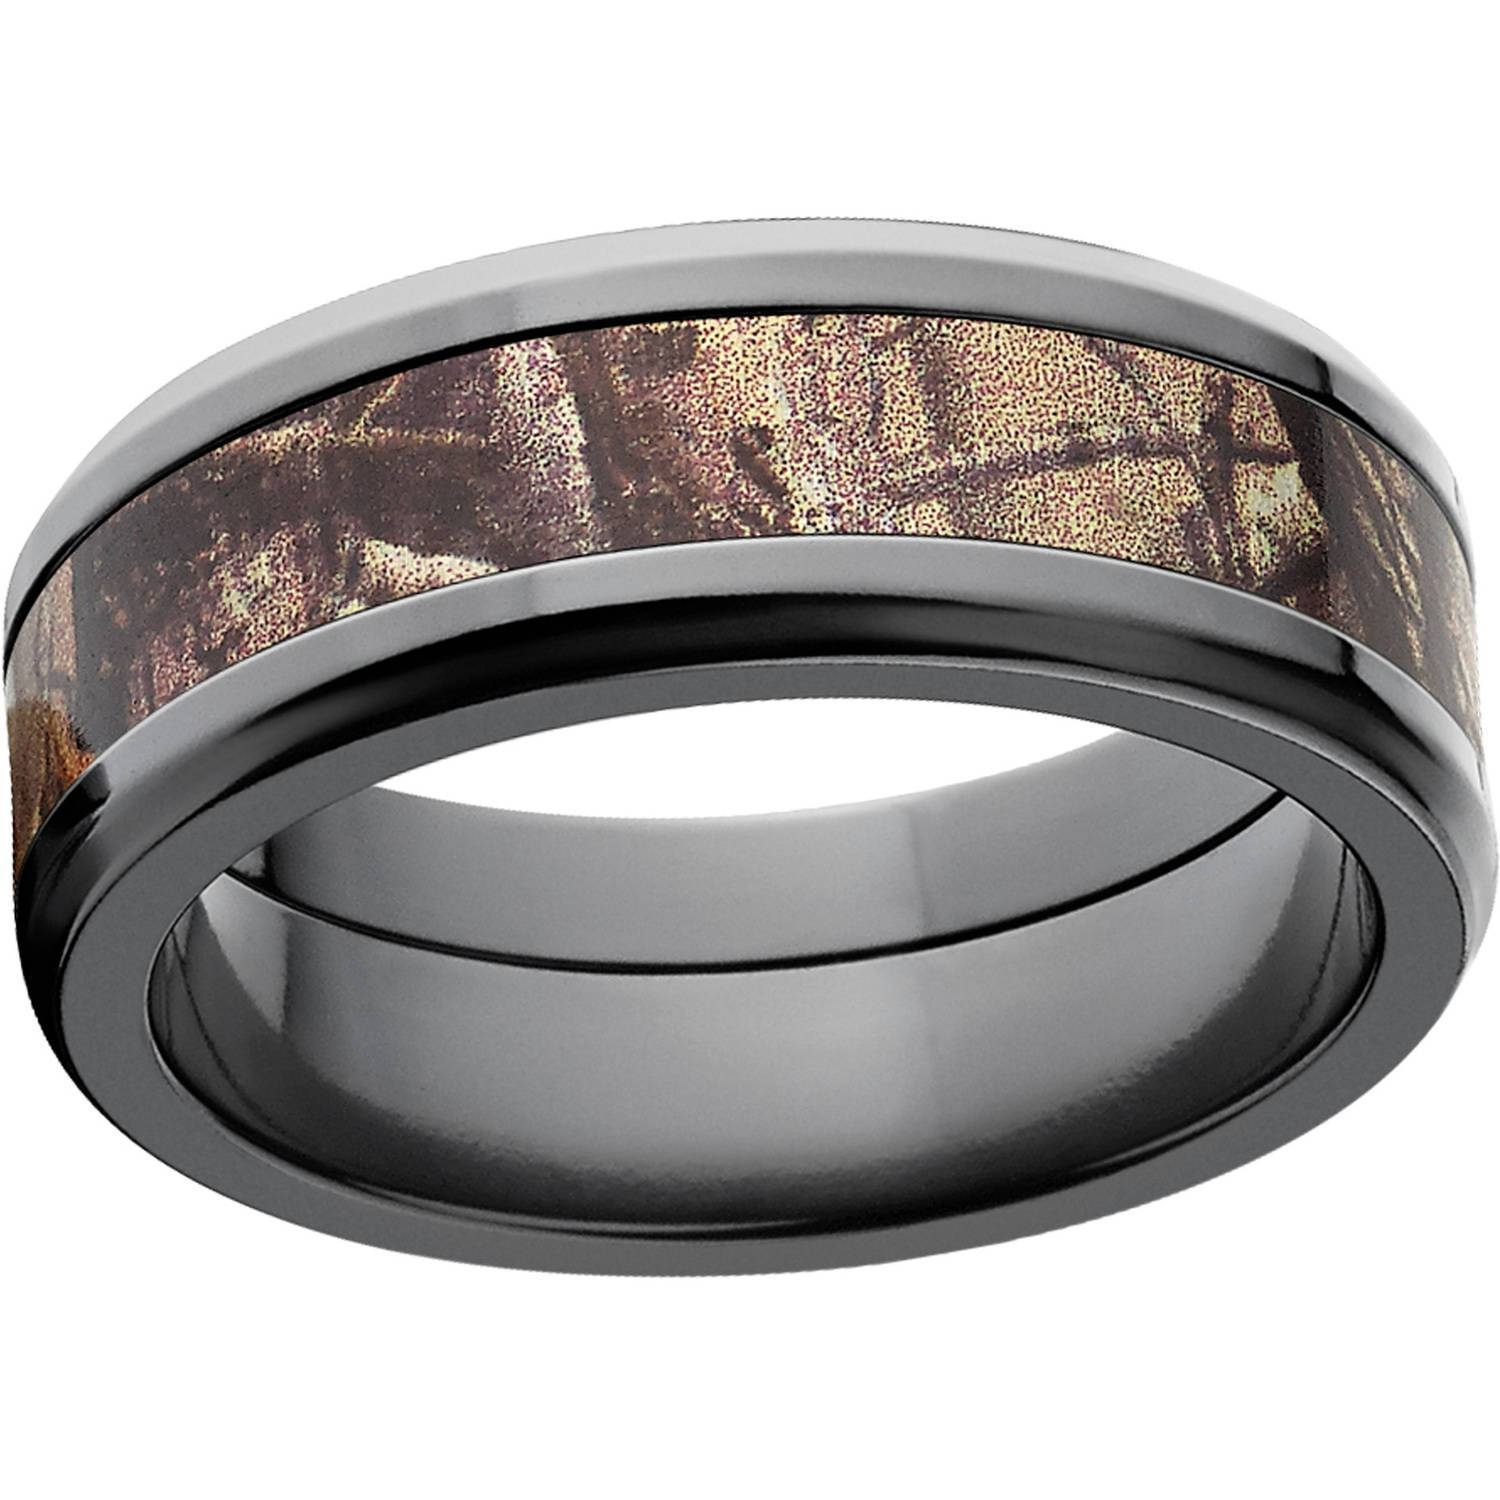 Realtree Ap Men's Camo 8Mm Black Zirconium Wedding Band – Walmart Throughout Black Zirconium Wedding Bands (Gallery 4 of 15)